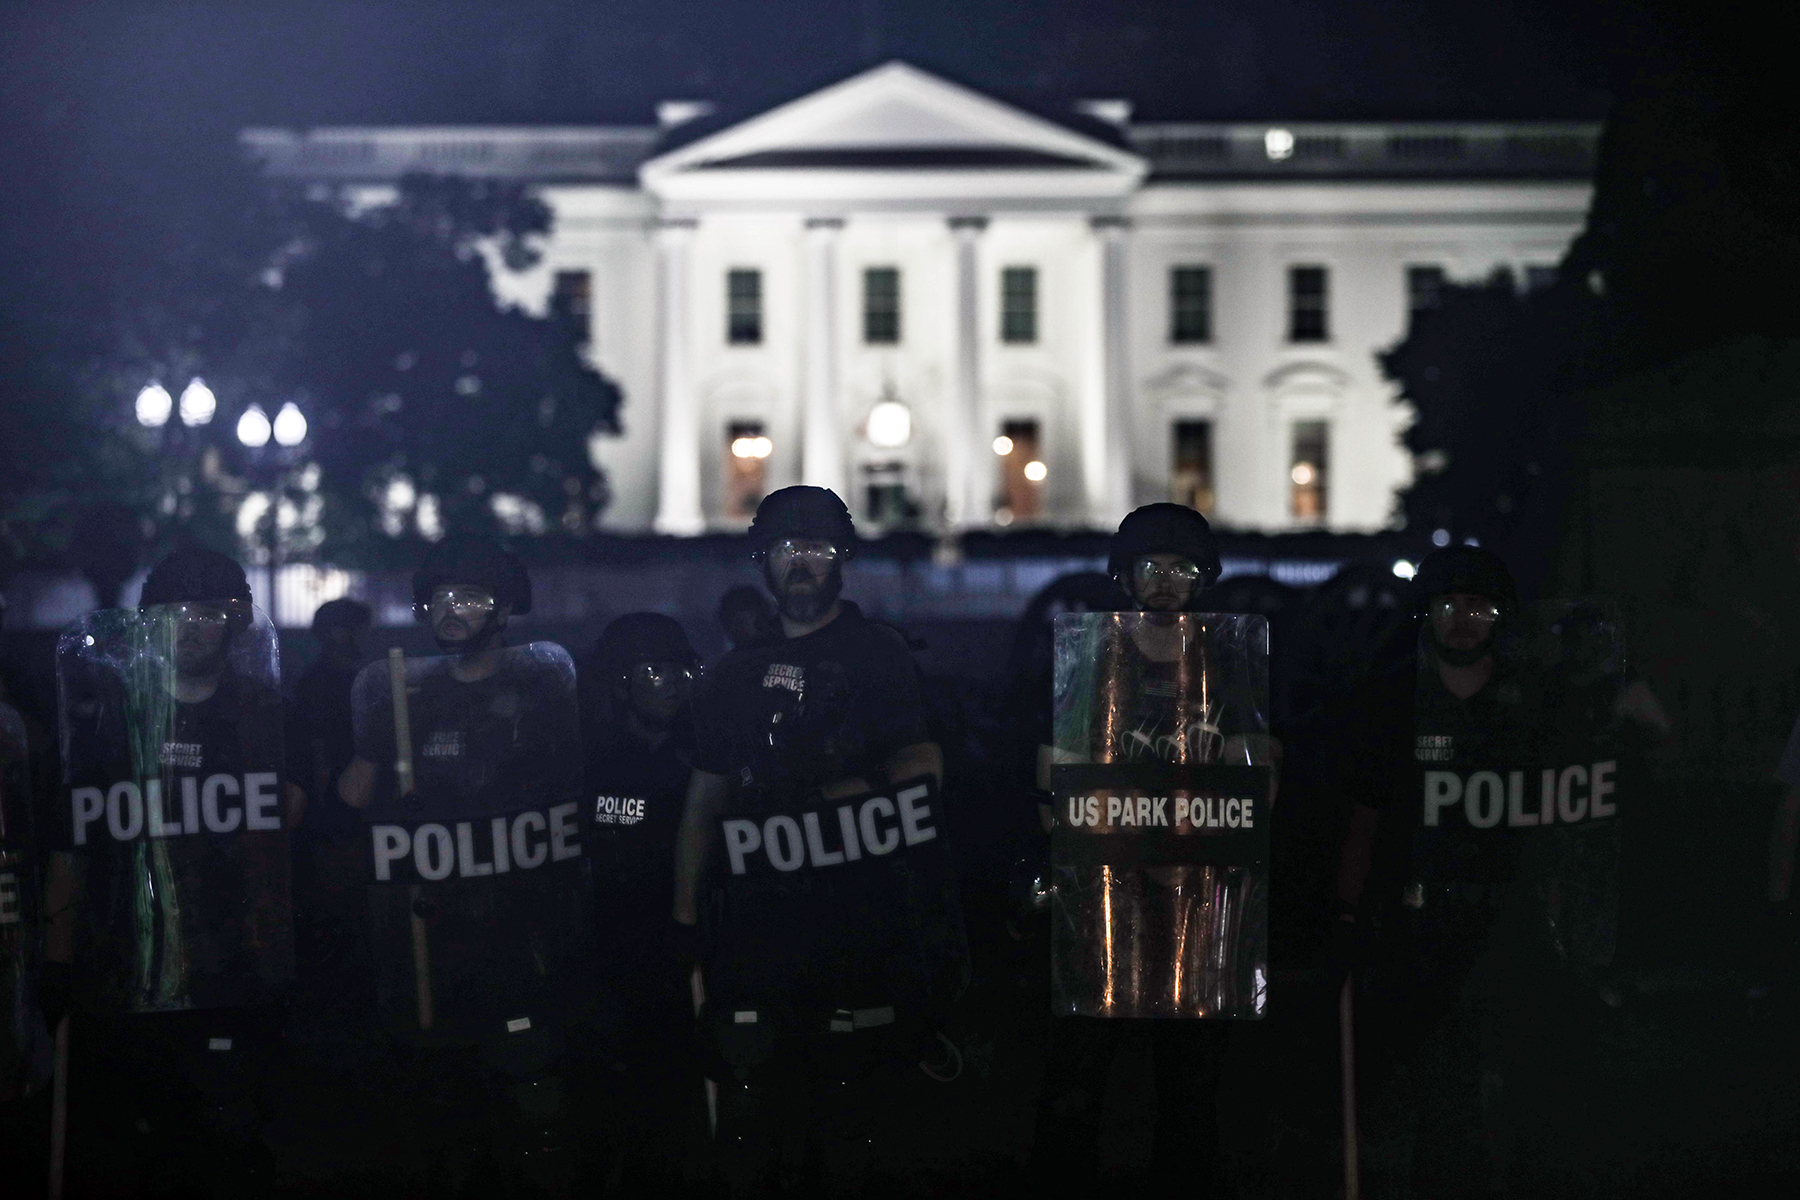 WASHINGTON, USA - JUNE 1: Police take security measures near White House during a protest over the death of George Floyd, an unarmed black man who died after being pinned down by a white police officer in Washington, United States on June 1, 2020. (Photo by Yasin Ozturk/Anadolu Agency via Getty Images)